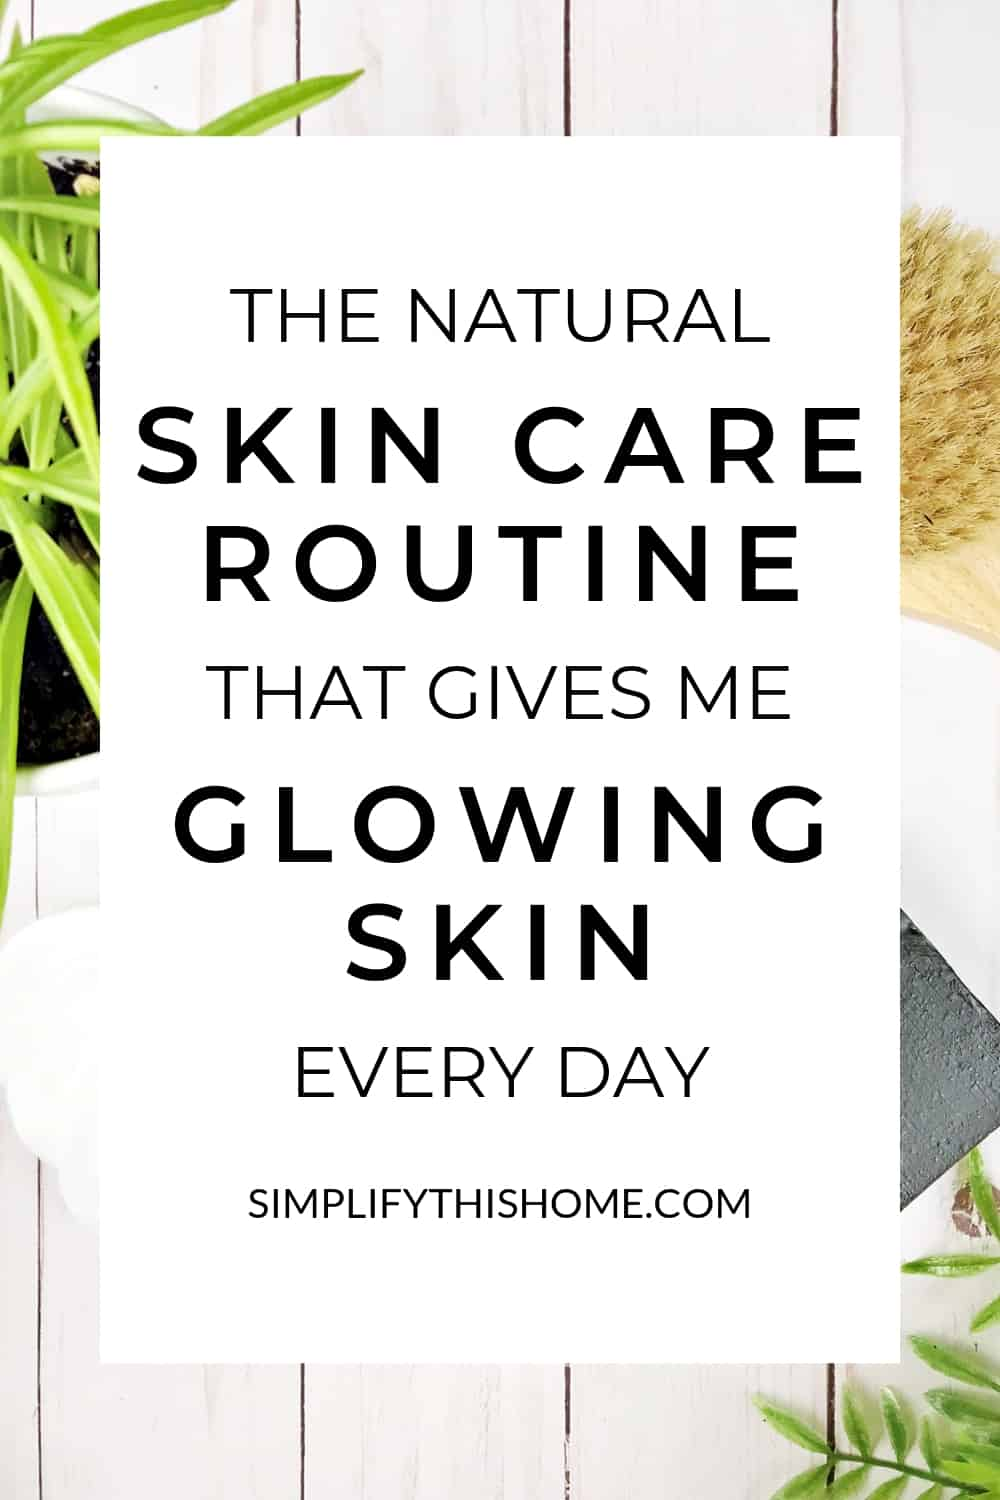 The natural skin care routine that gives me glowing skin